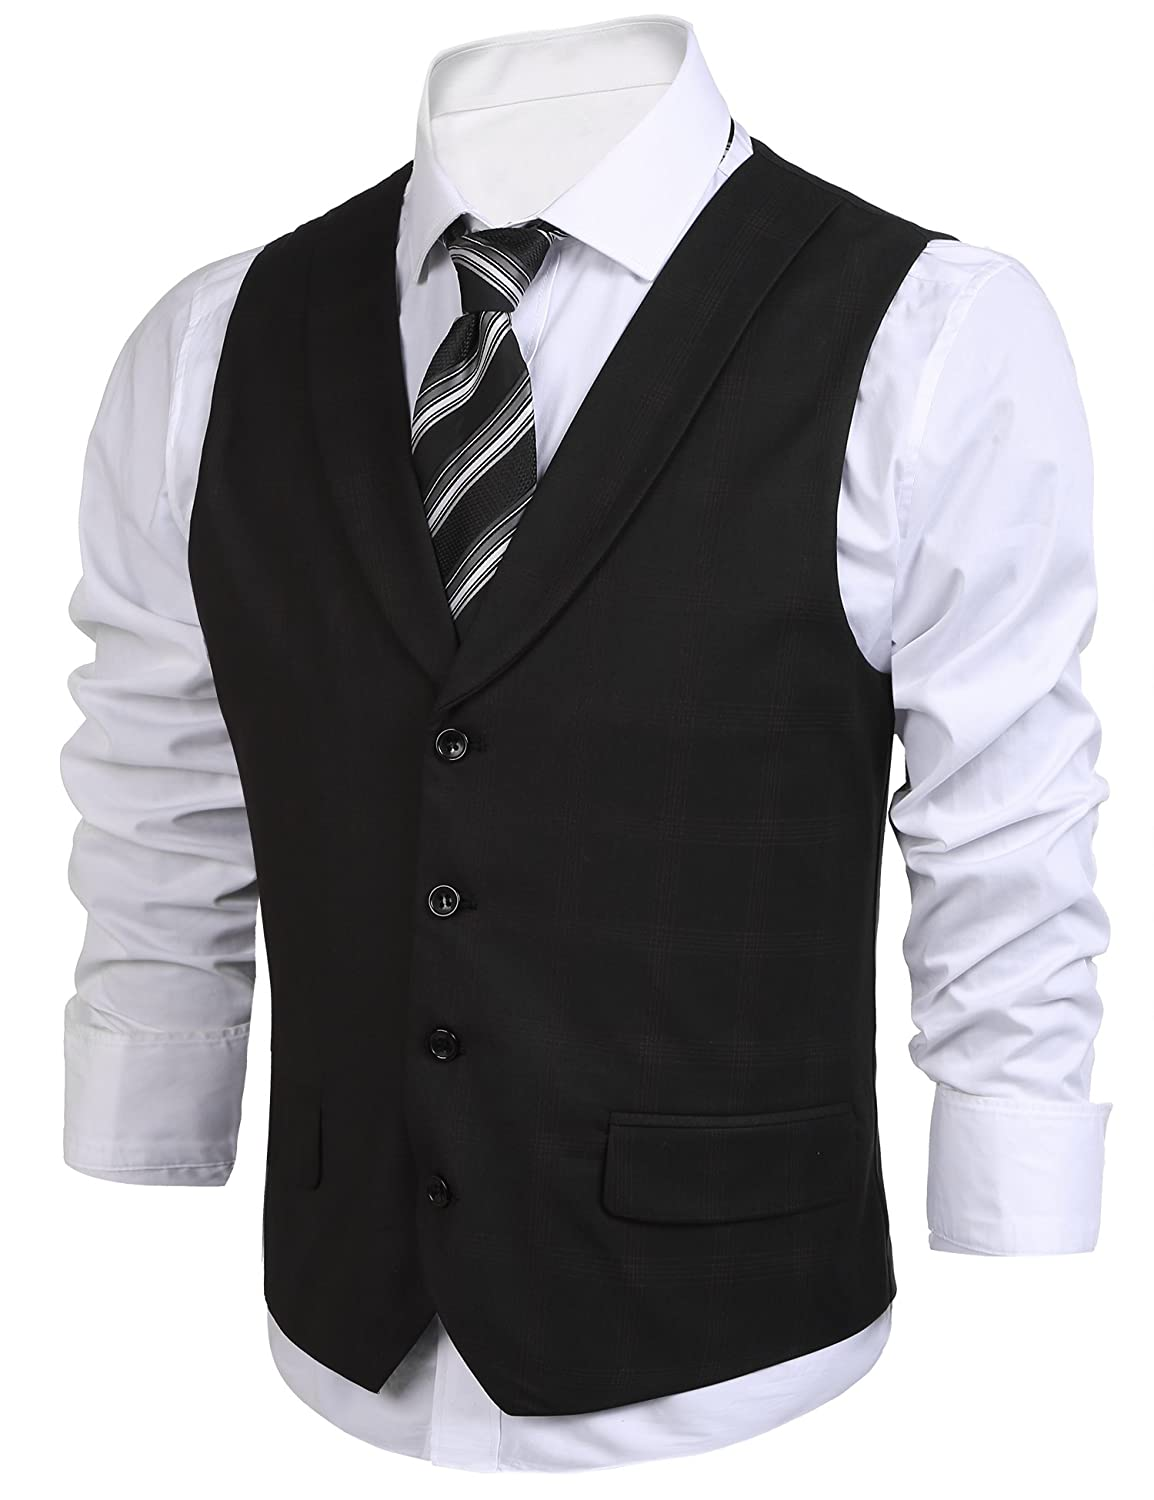 Victorian Men's Tuxedo, Tailcoats, Formalwear Guide Jinidu Mens Lattice Casual Waistcoat Gentleman Lapel Business Suit Blazer Vest $31.99 AT vintagedancer.com